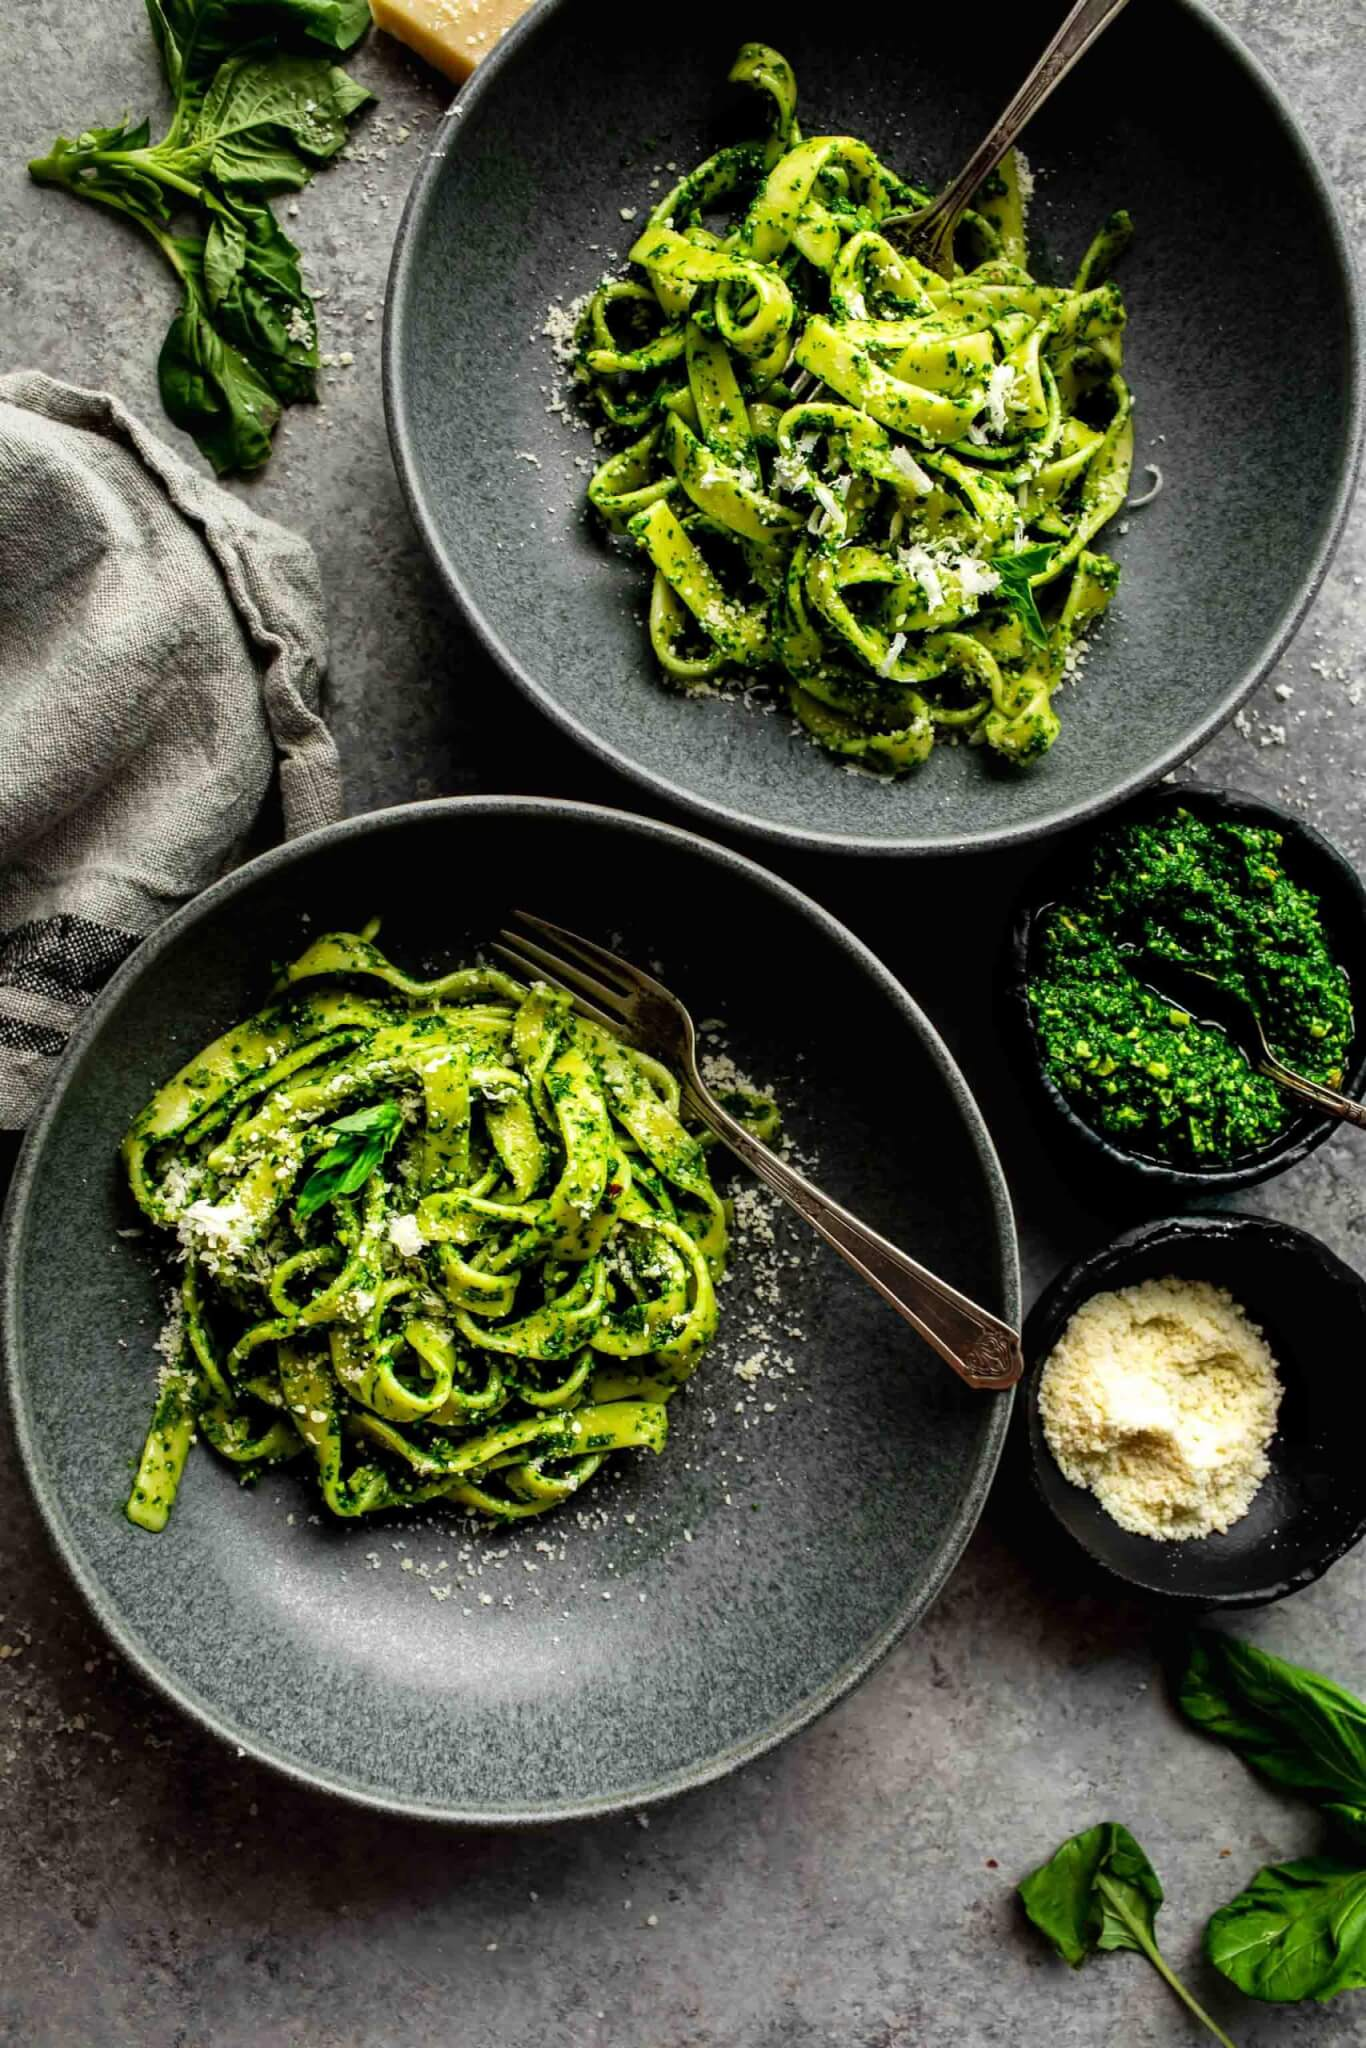 TWO BOWLS OF PASTA TOSSED WITH PESTO, NEXT TO SMALL BOWLS OF CHEESE AND PESTO